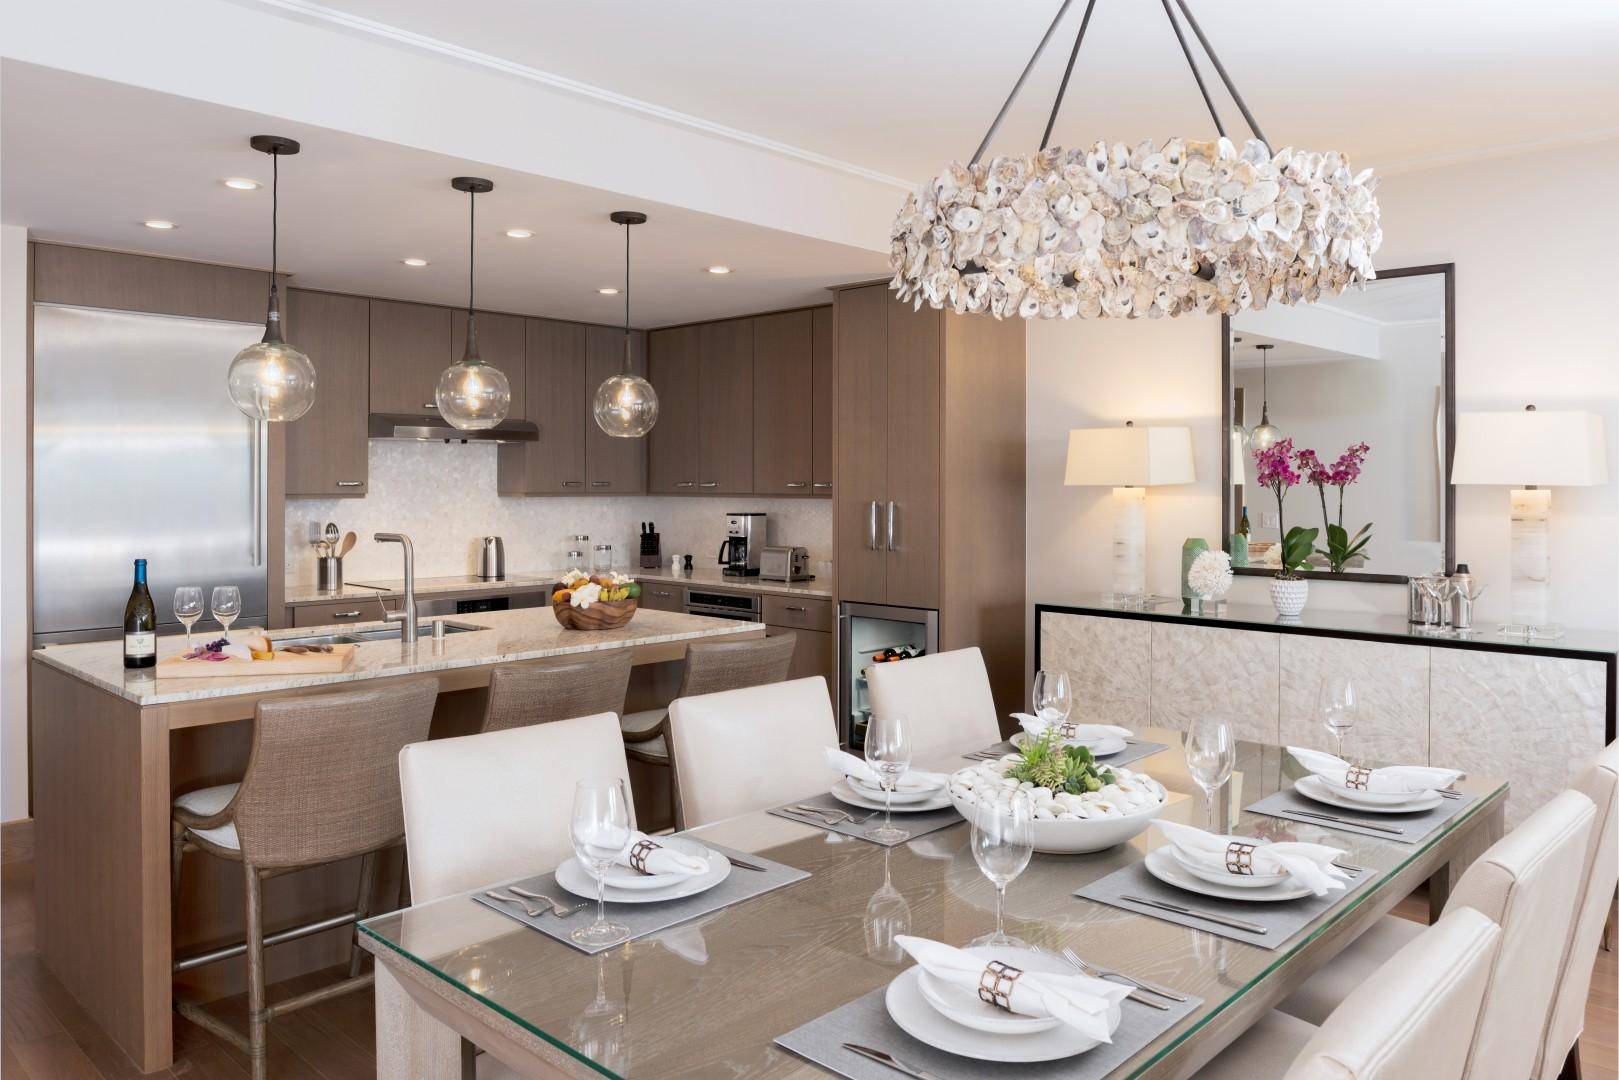 The residences feature formal dining spaces as well as bar seating in sleek, well-equipped kitchens.